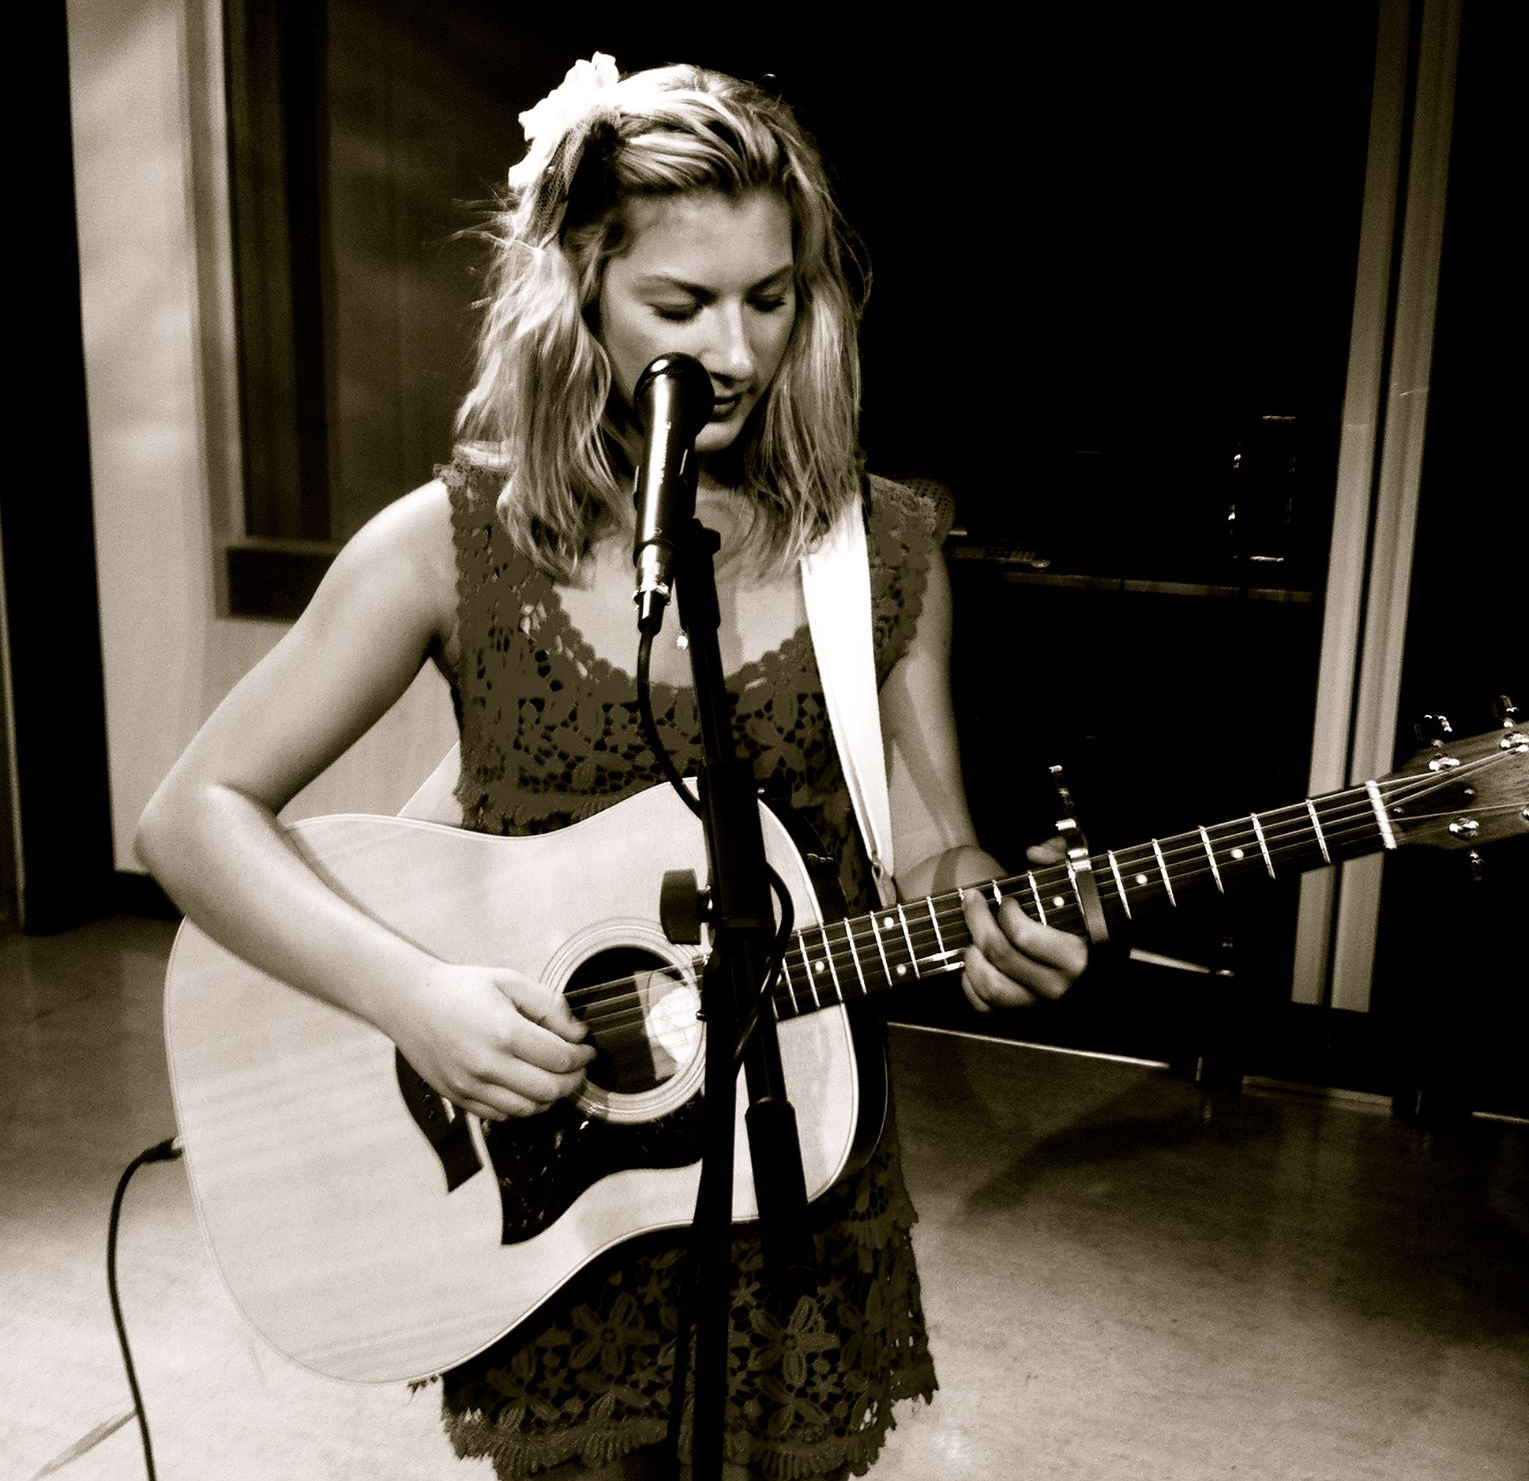 - Sally Wallick is a free spirited singer songwriter in the Okanagan. She performs for weddings, wineries, restaurants, coffee shops, and of course YOGA! Sally sings songs about love and happiness and she does so in a very soulful way where you can feel the music and the emotion that it brings.